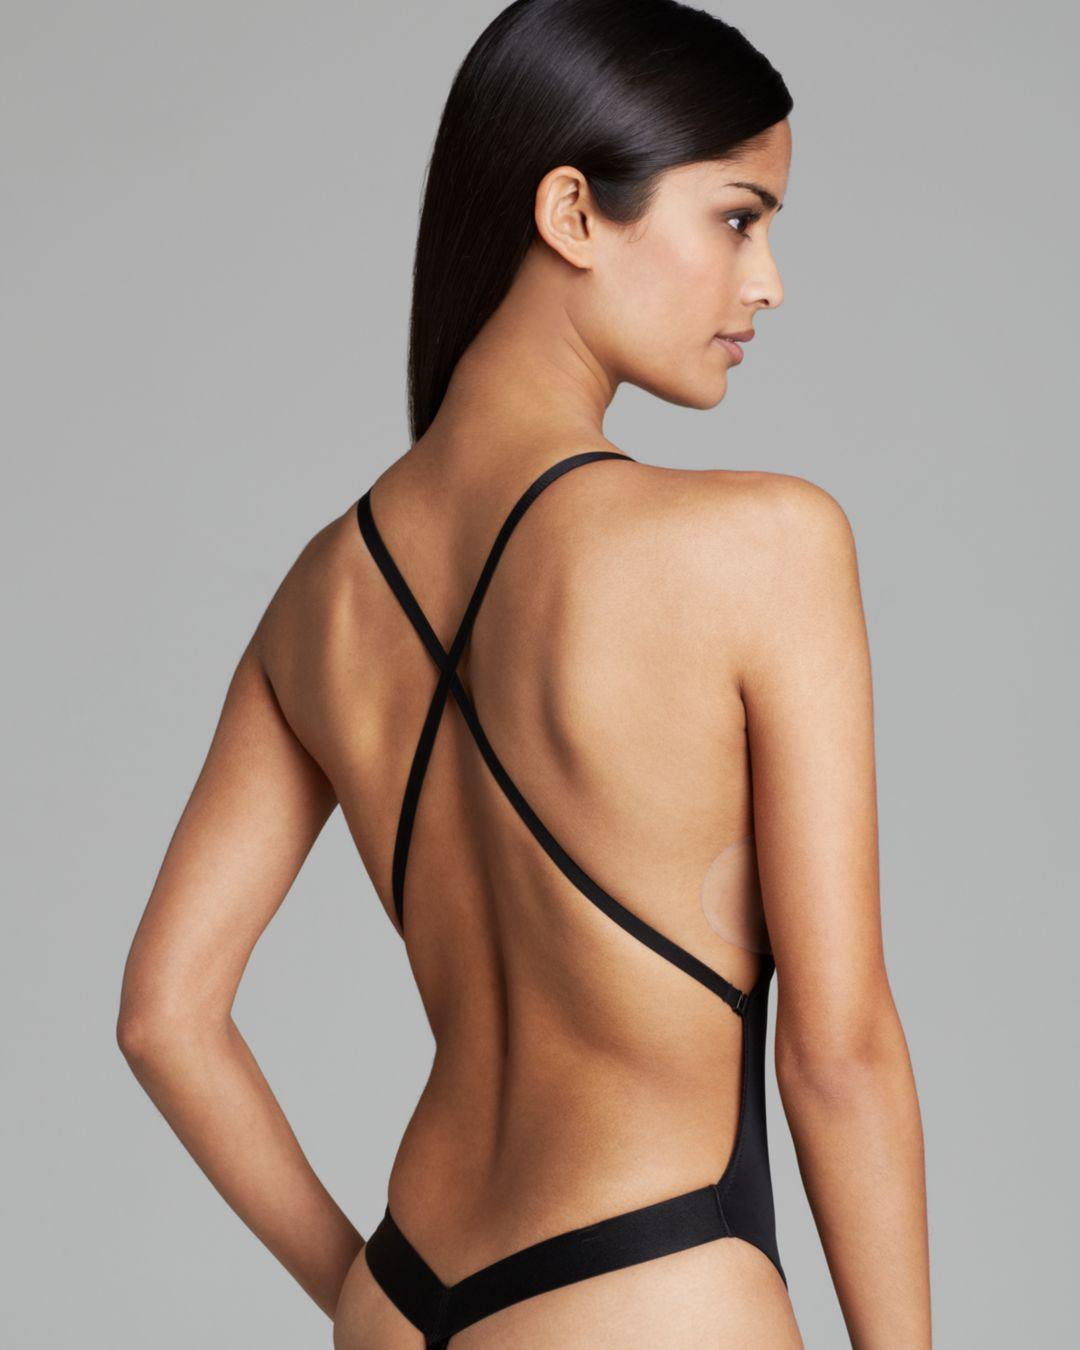 99f2801921ae4 Fashion Forms U Plunge Backless Strapless Bodysuit - Libaifoundation ...